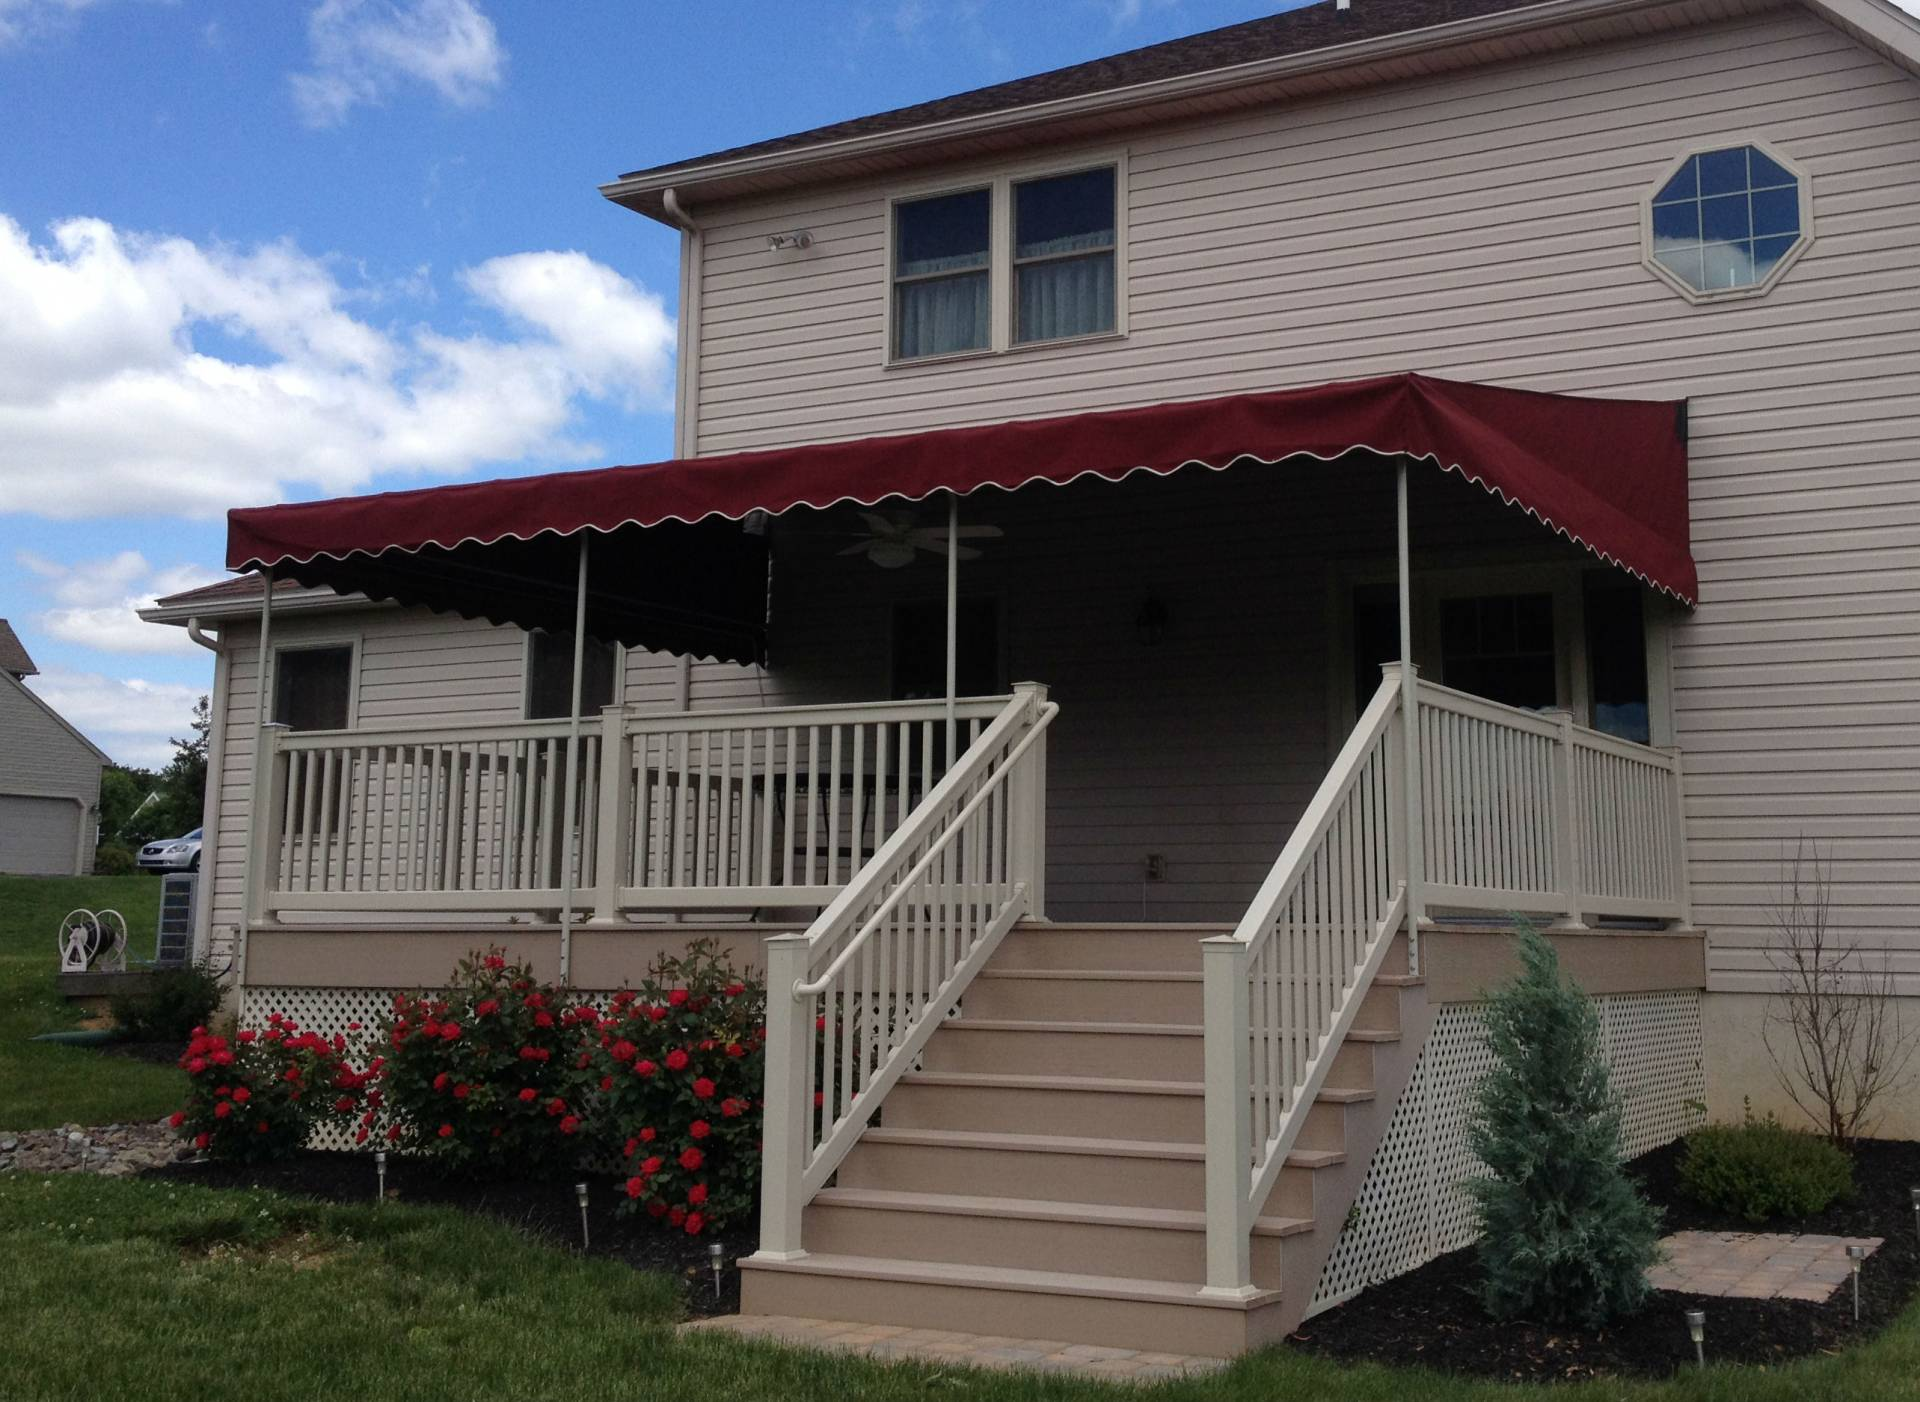 shades lcm awning stationary decks plus canopies awnings for services